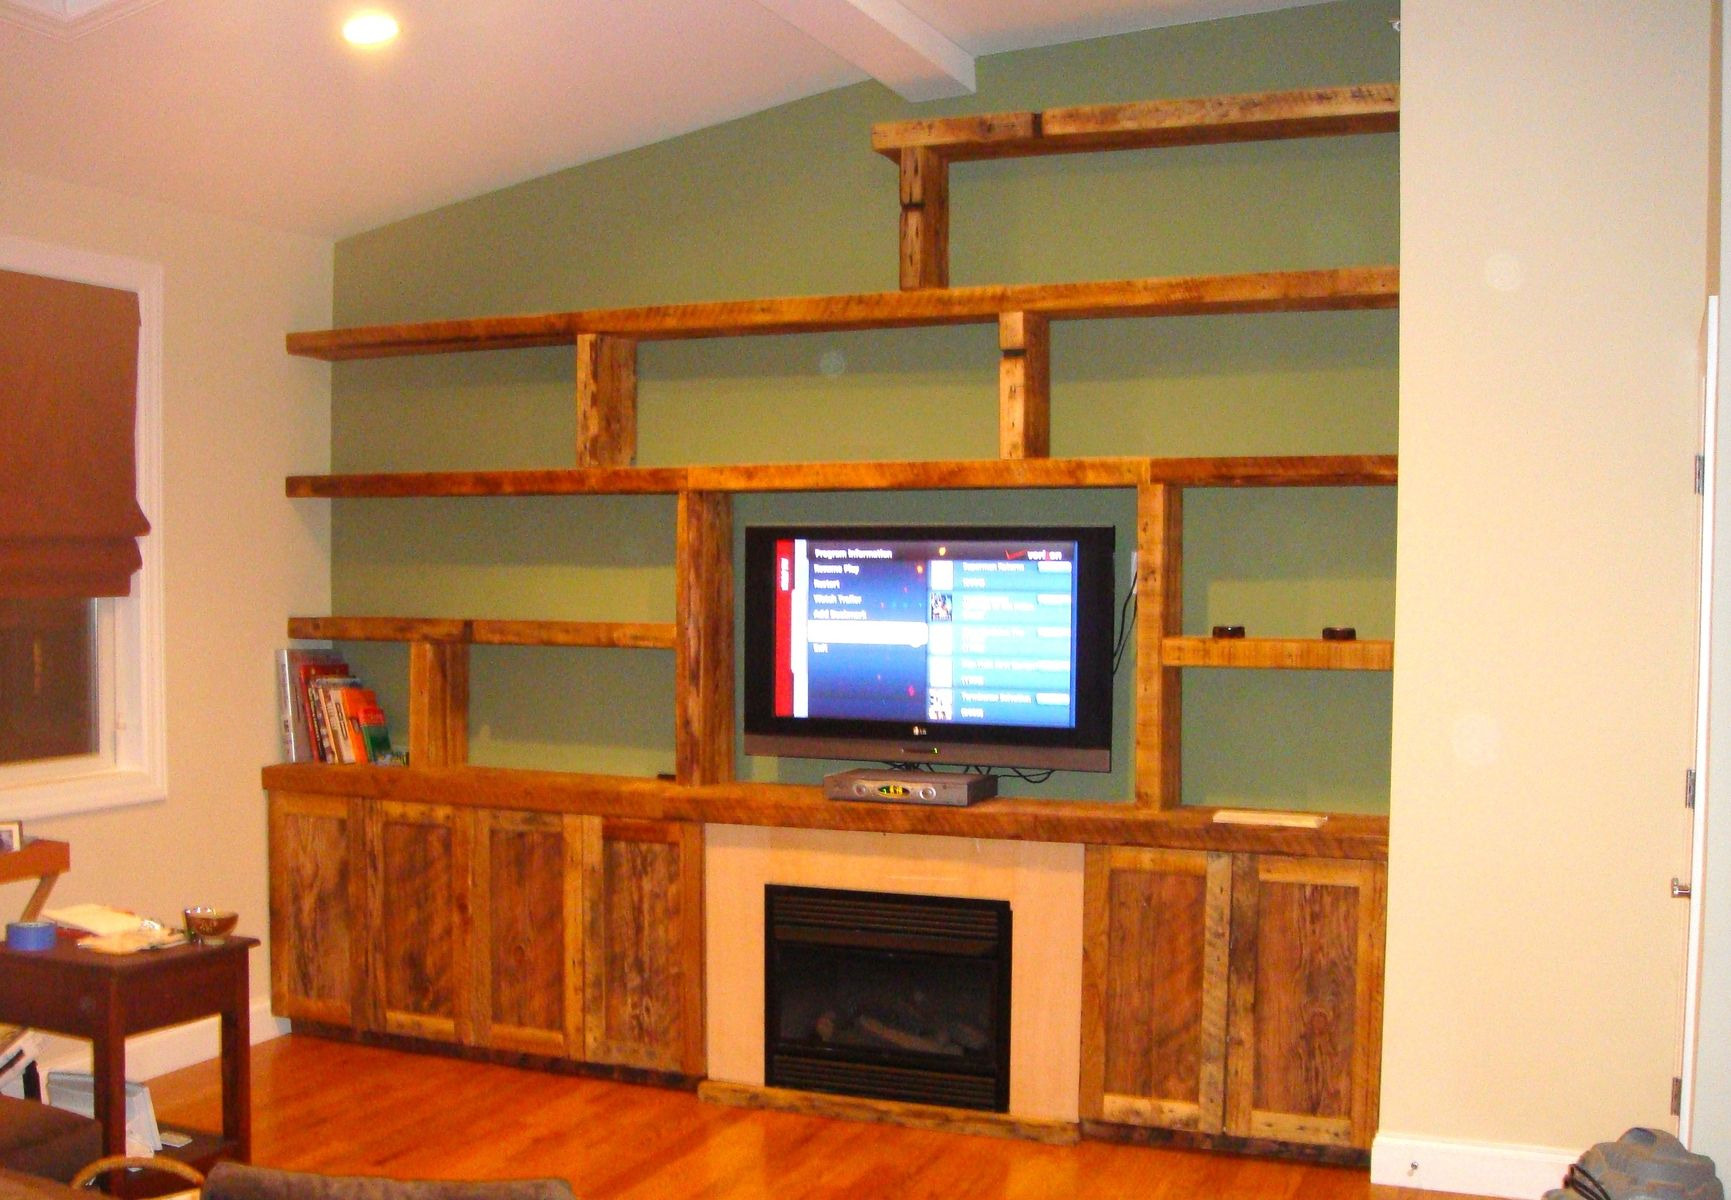 ... Bright Living Rooms: Wonderful Furniture Interior Rustic Custom Wooden  Wall Unit With Bookcase And Built In Tv Space And Fireplace In Small Living  Room ...